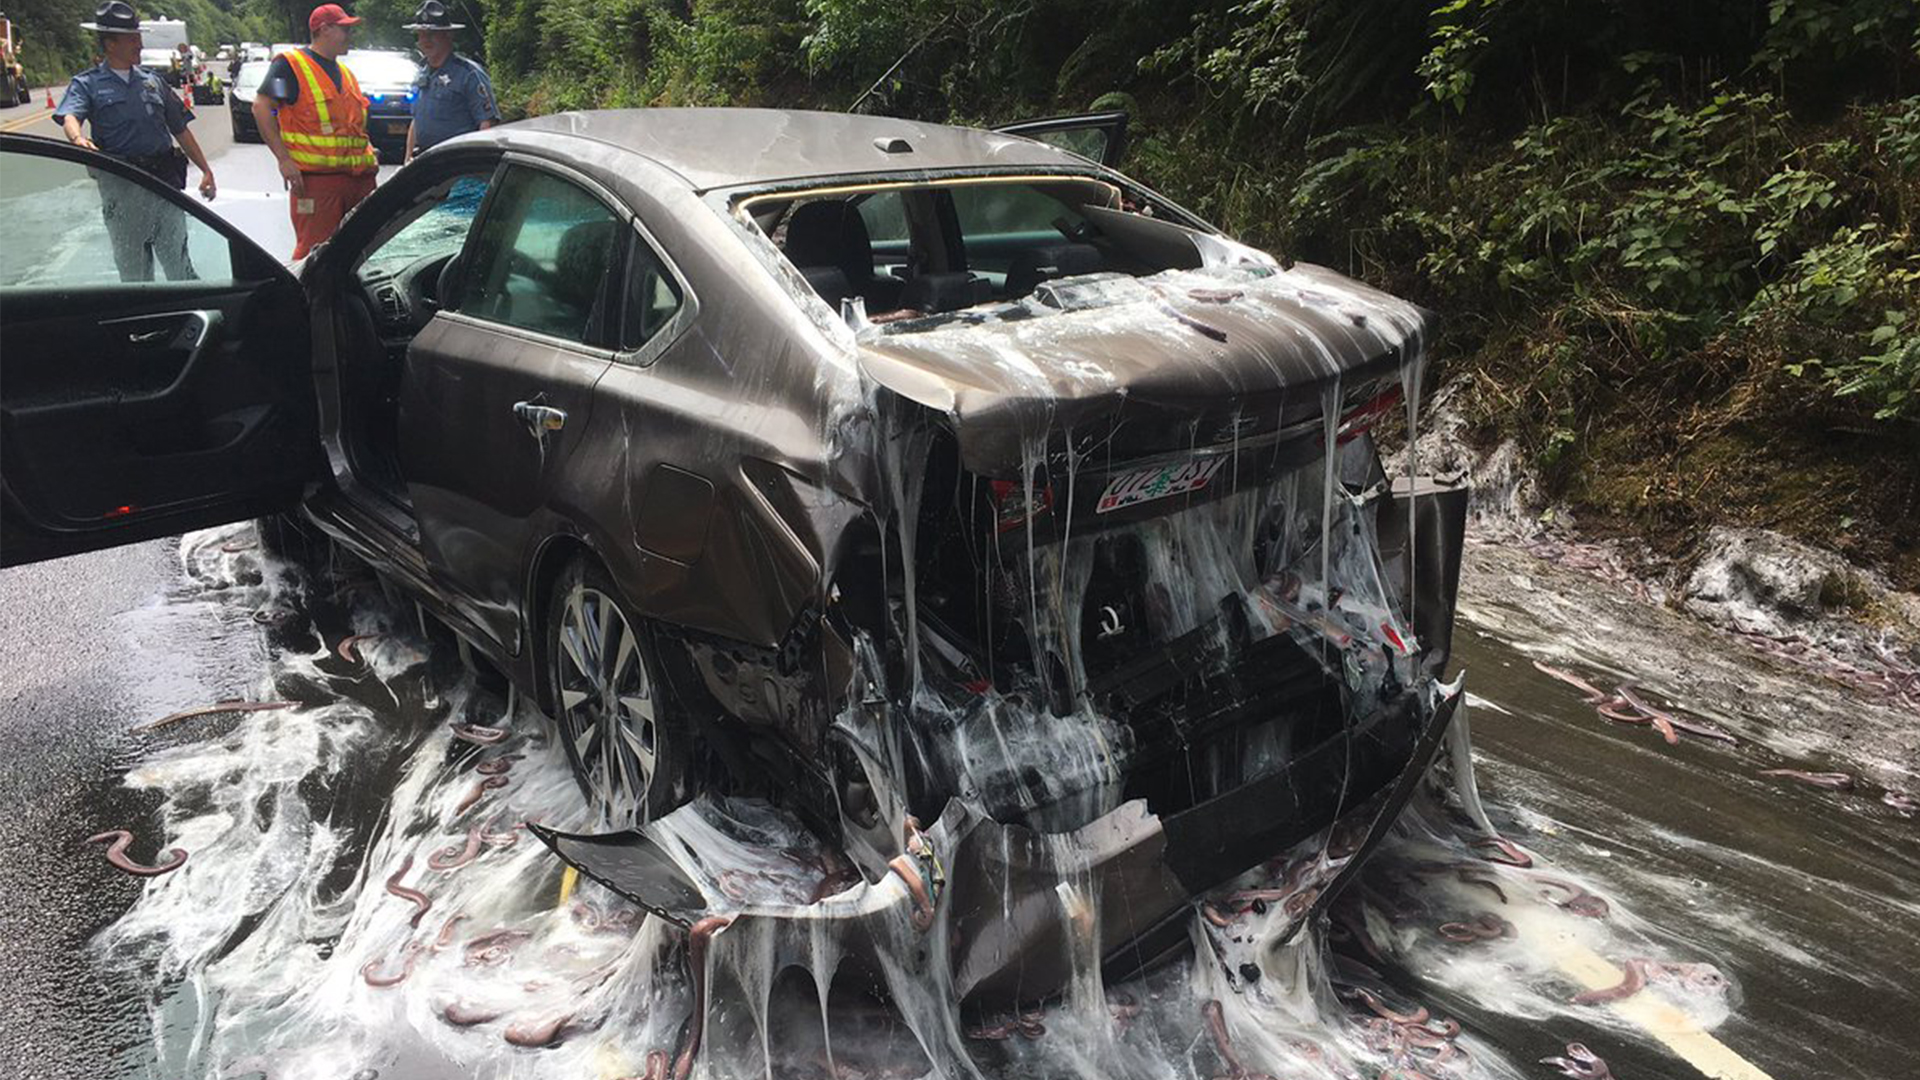 Watch: \'Slime Eels\' Explode on Highway After Bizarre Traffic Accident